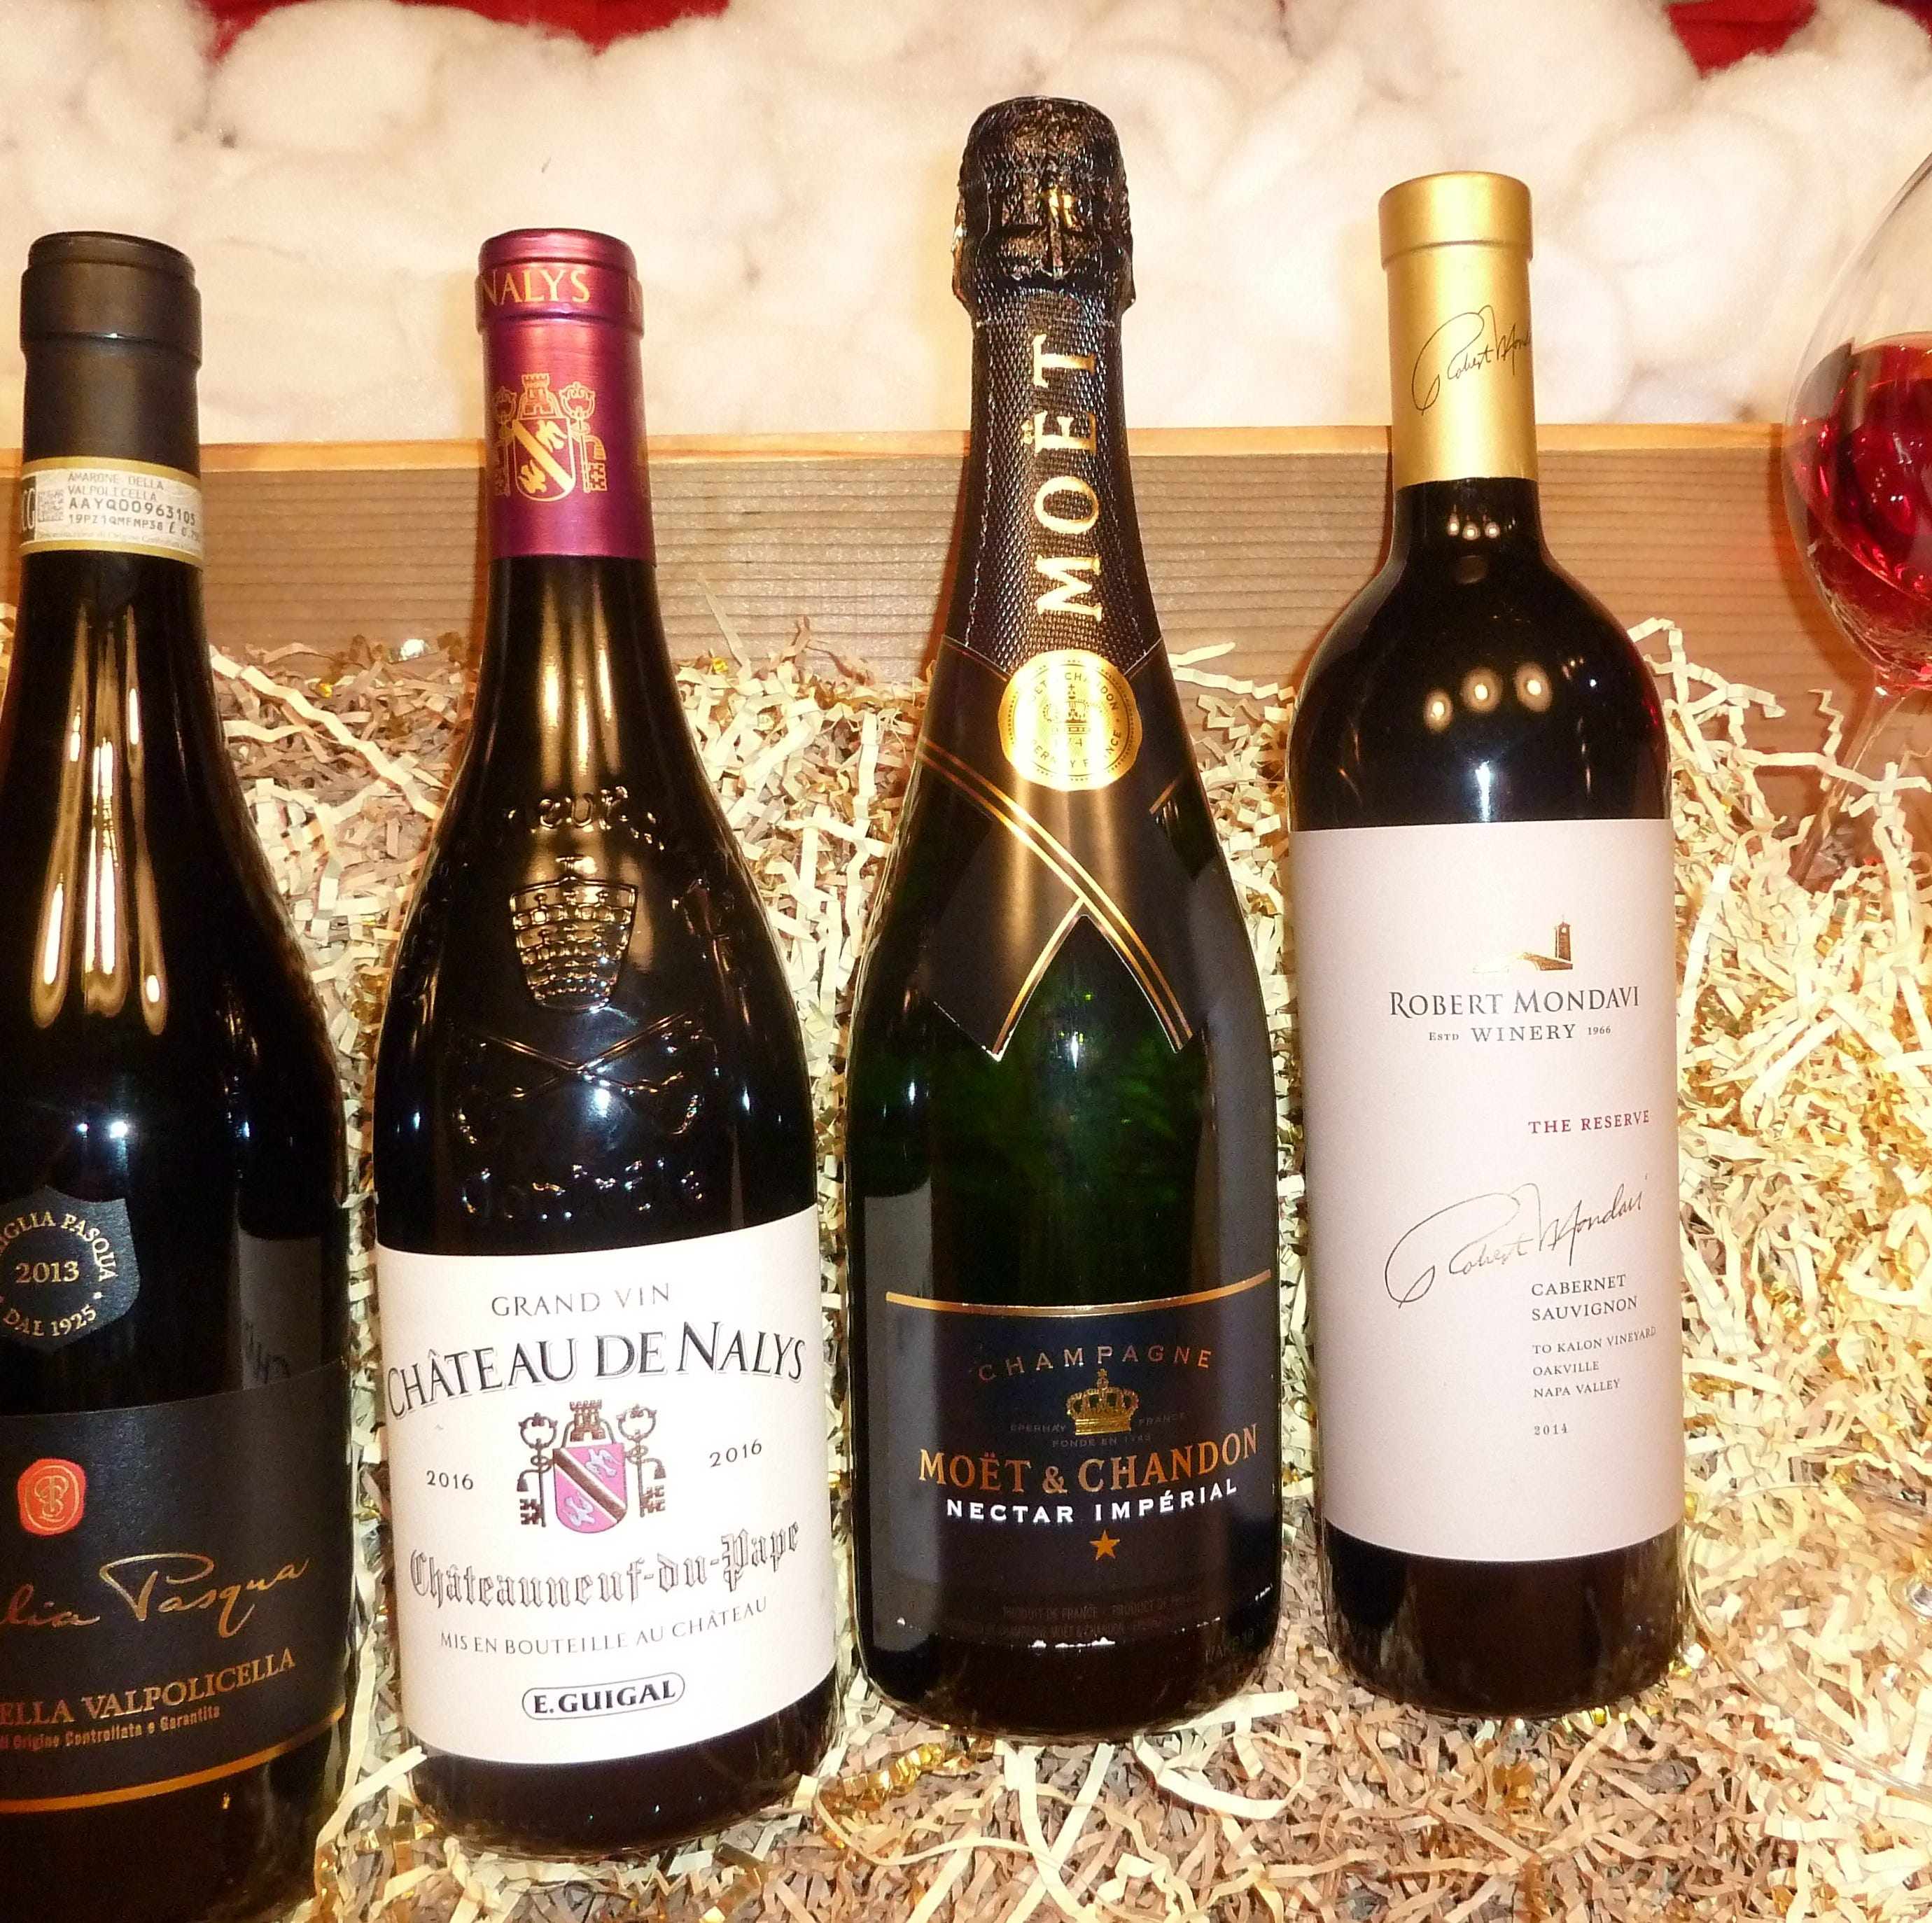 Gift guide for wine lovers: How to pick the perfect bottle for the holidays